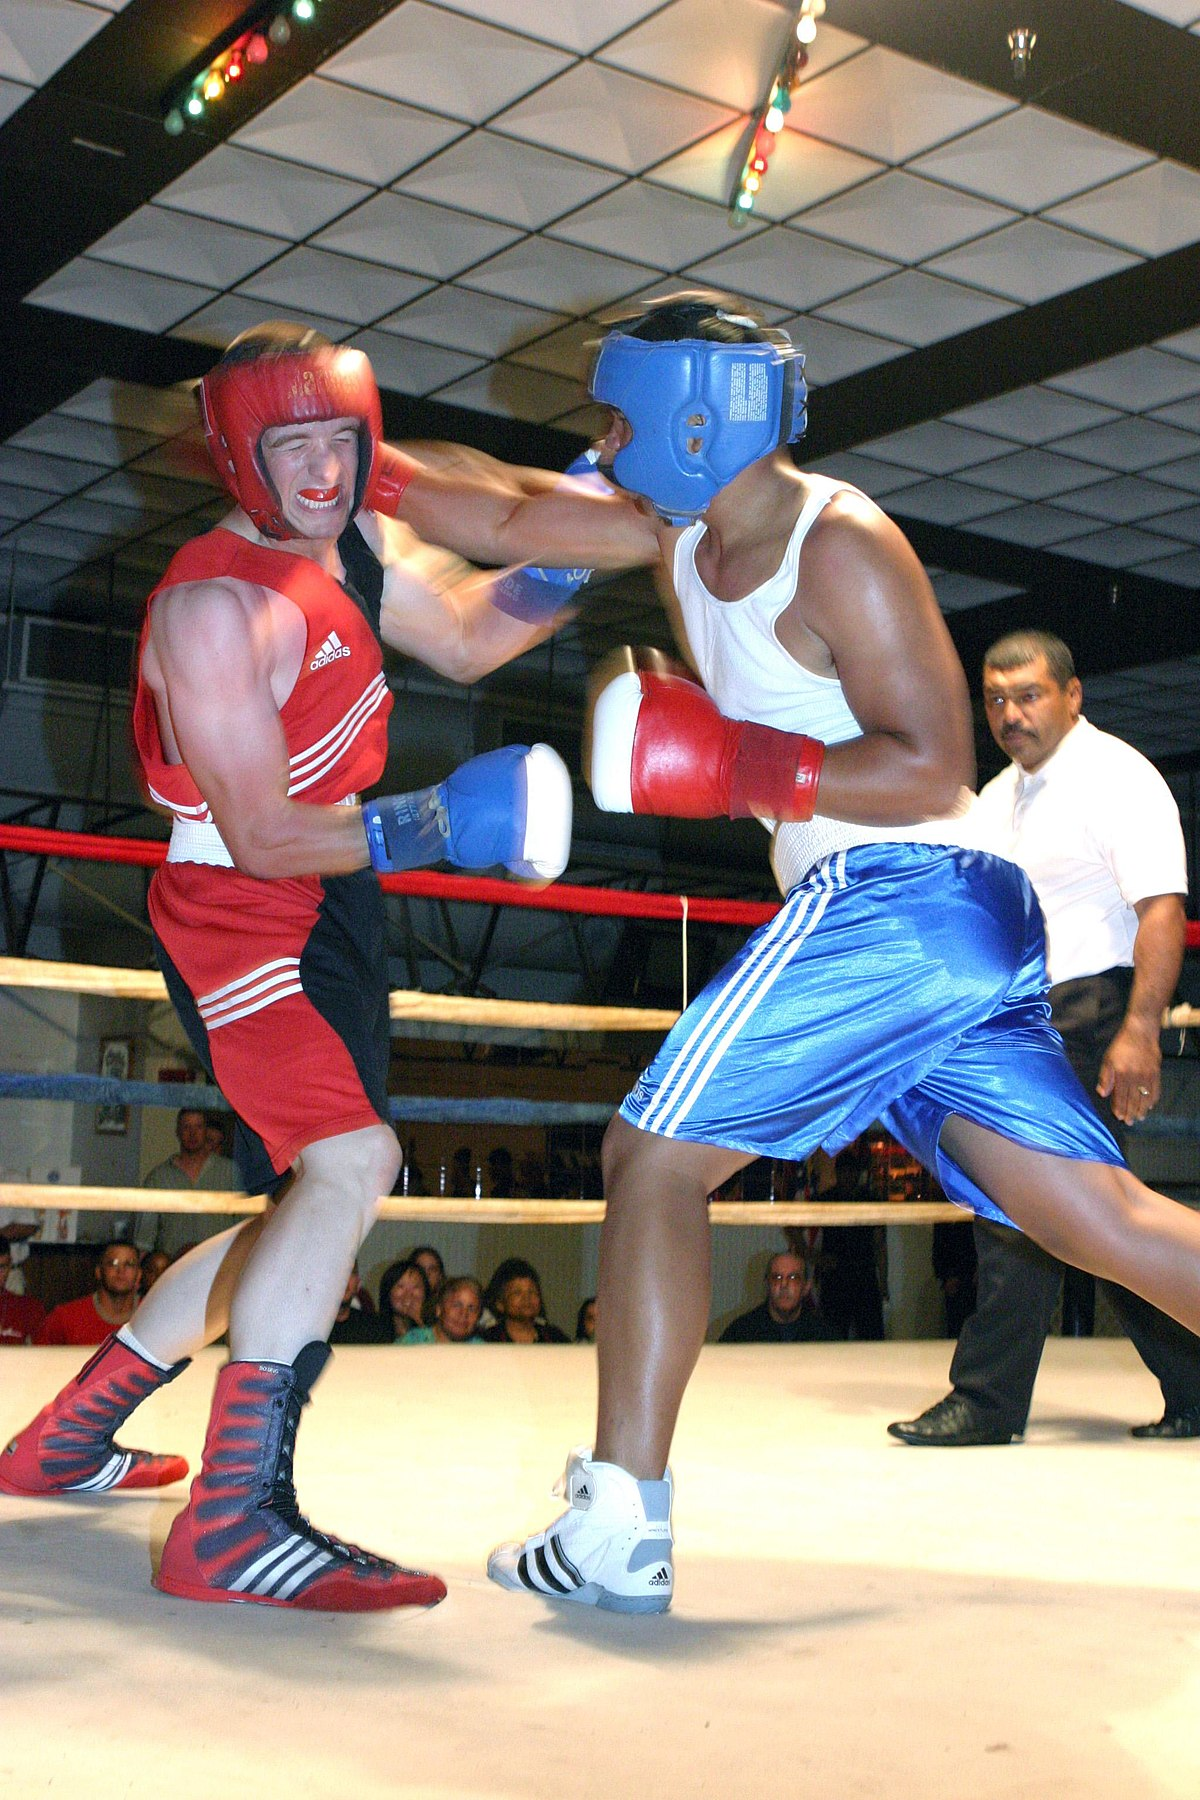 professional Boxing amateur and weight classes